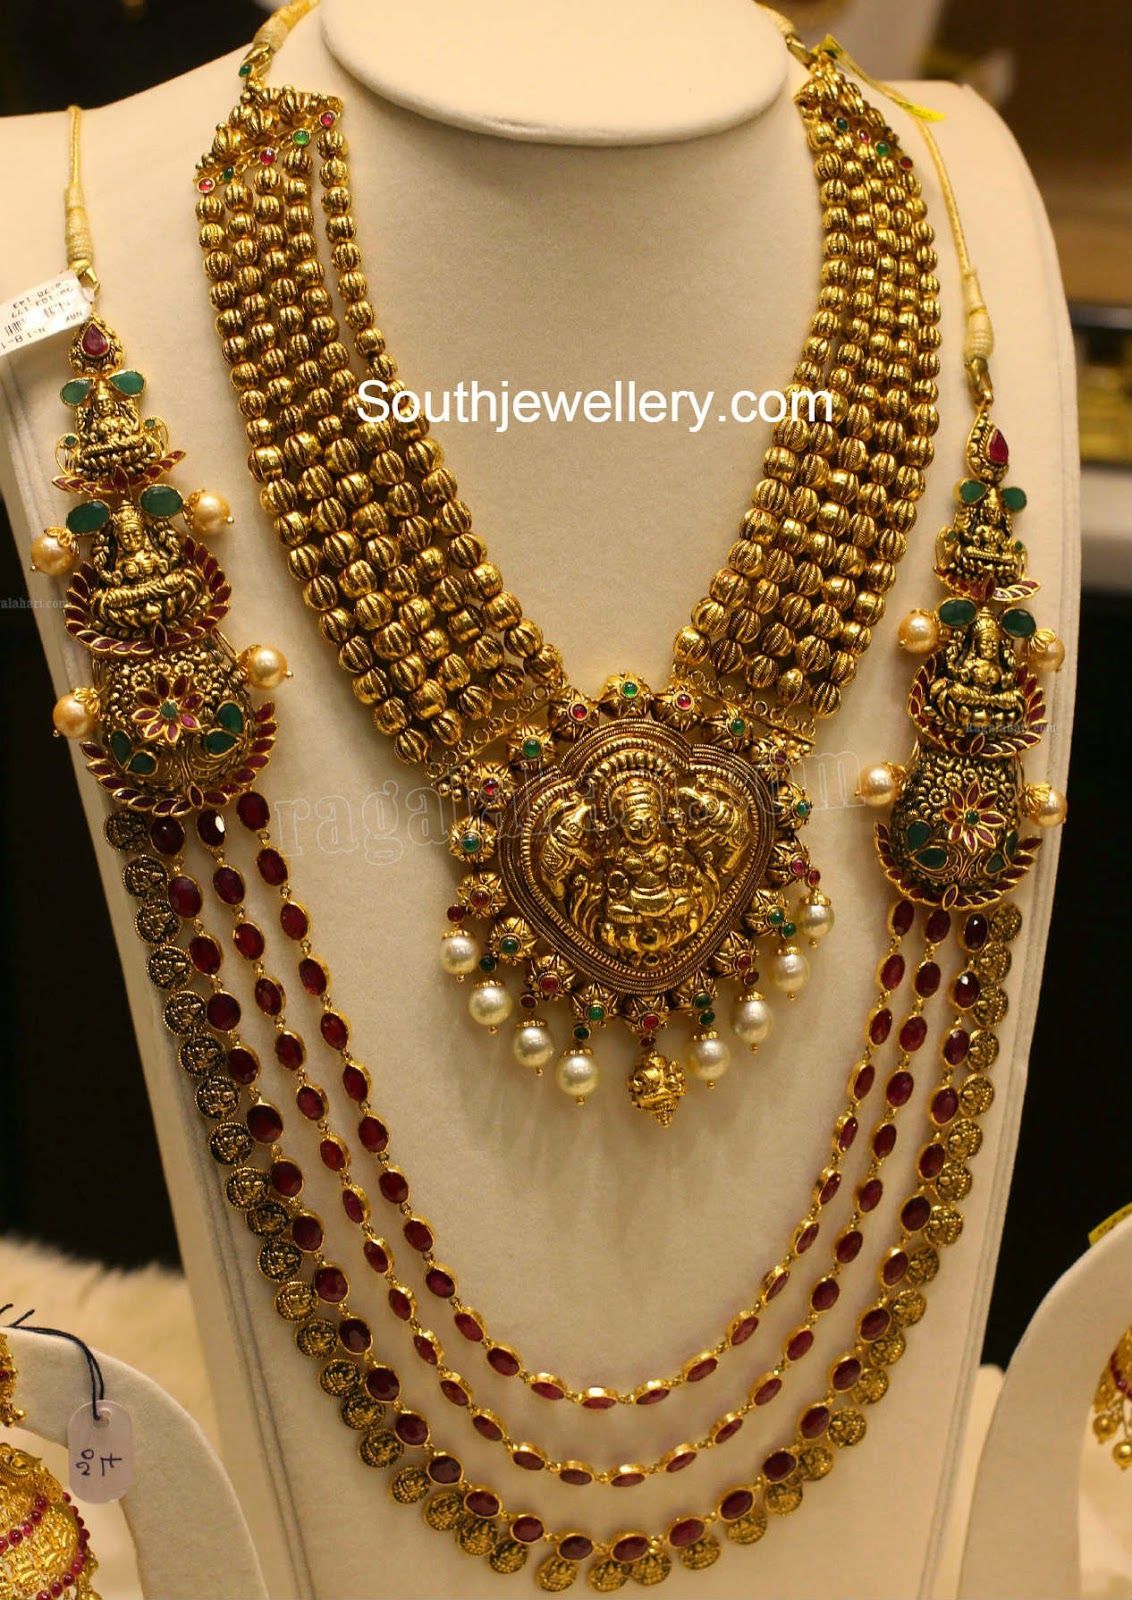 Gold necklace designs in grt jewellers - Temple Jewellery Designs In Grt Google Search